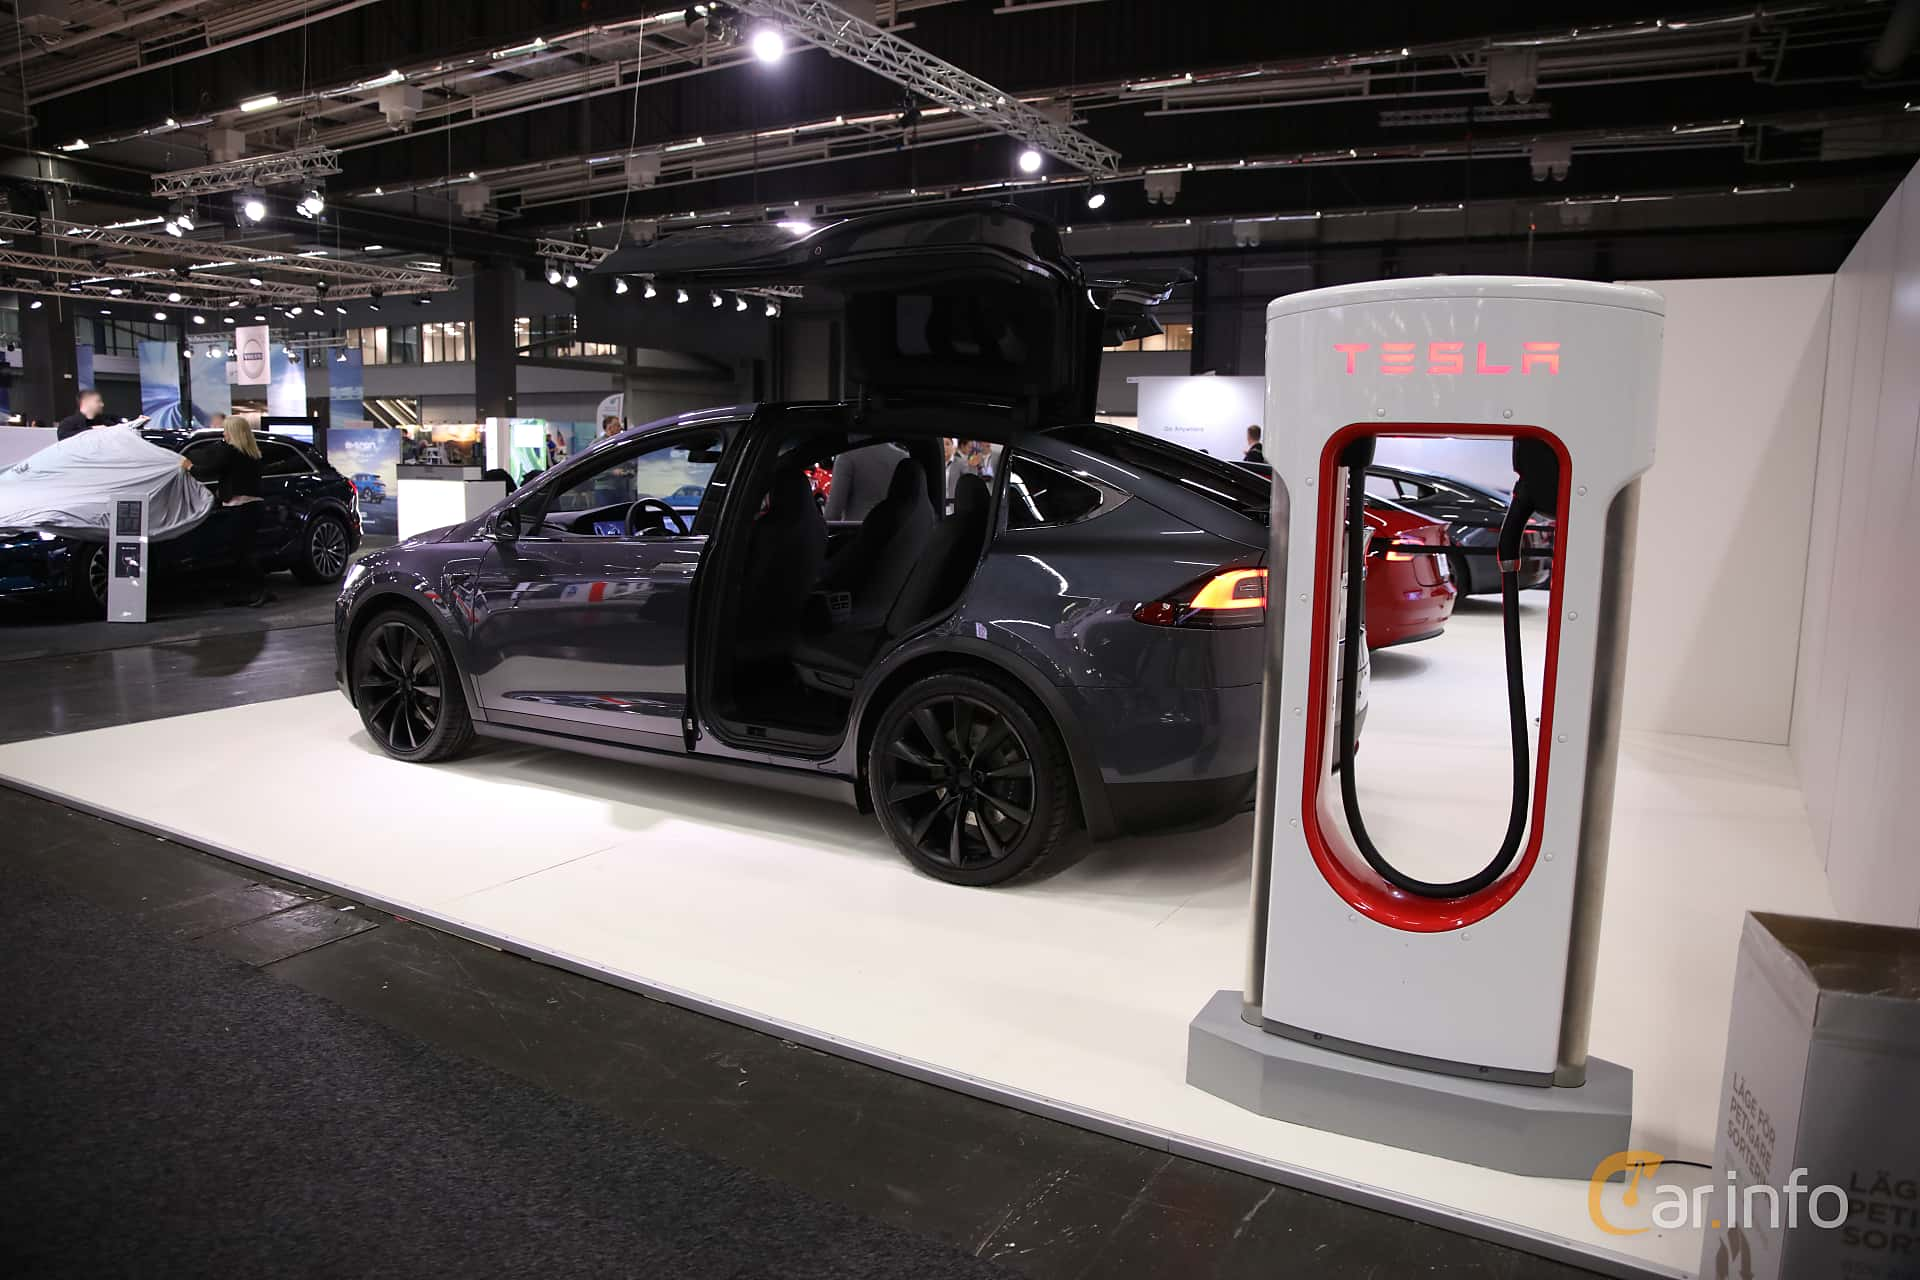 Tesla Model X 100D 100 kWh AWD Single Speed, 423hp, 2018 at eCar Expo Göteborg 2018